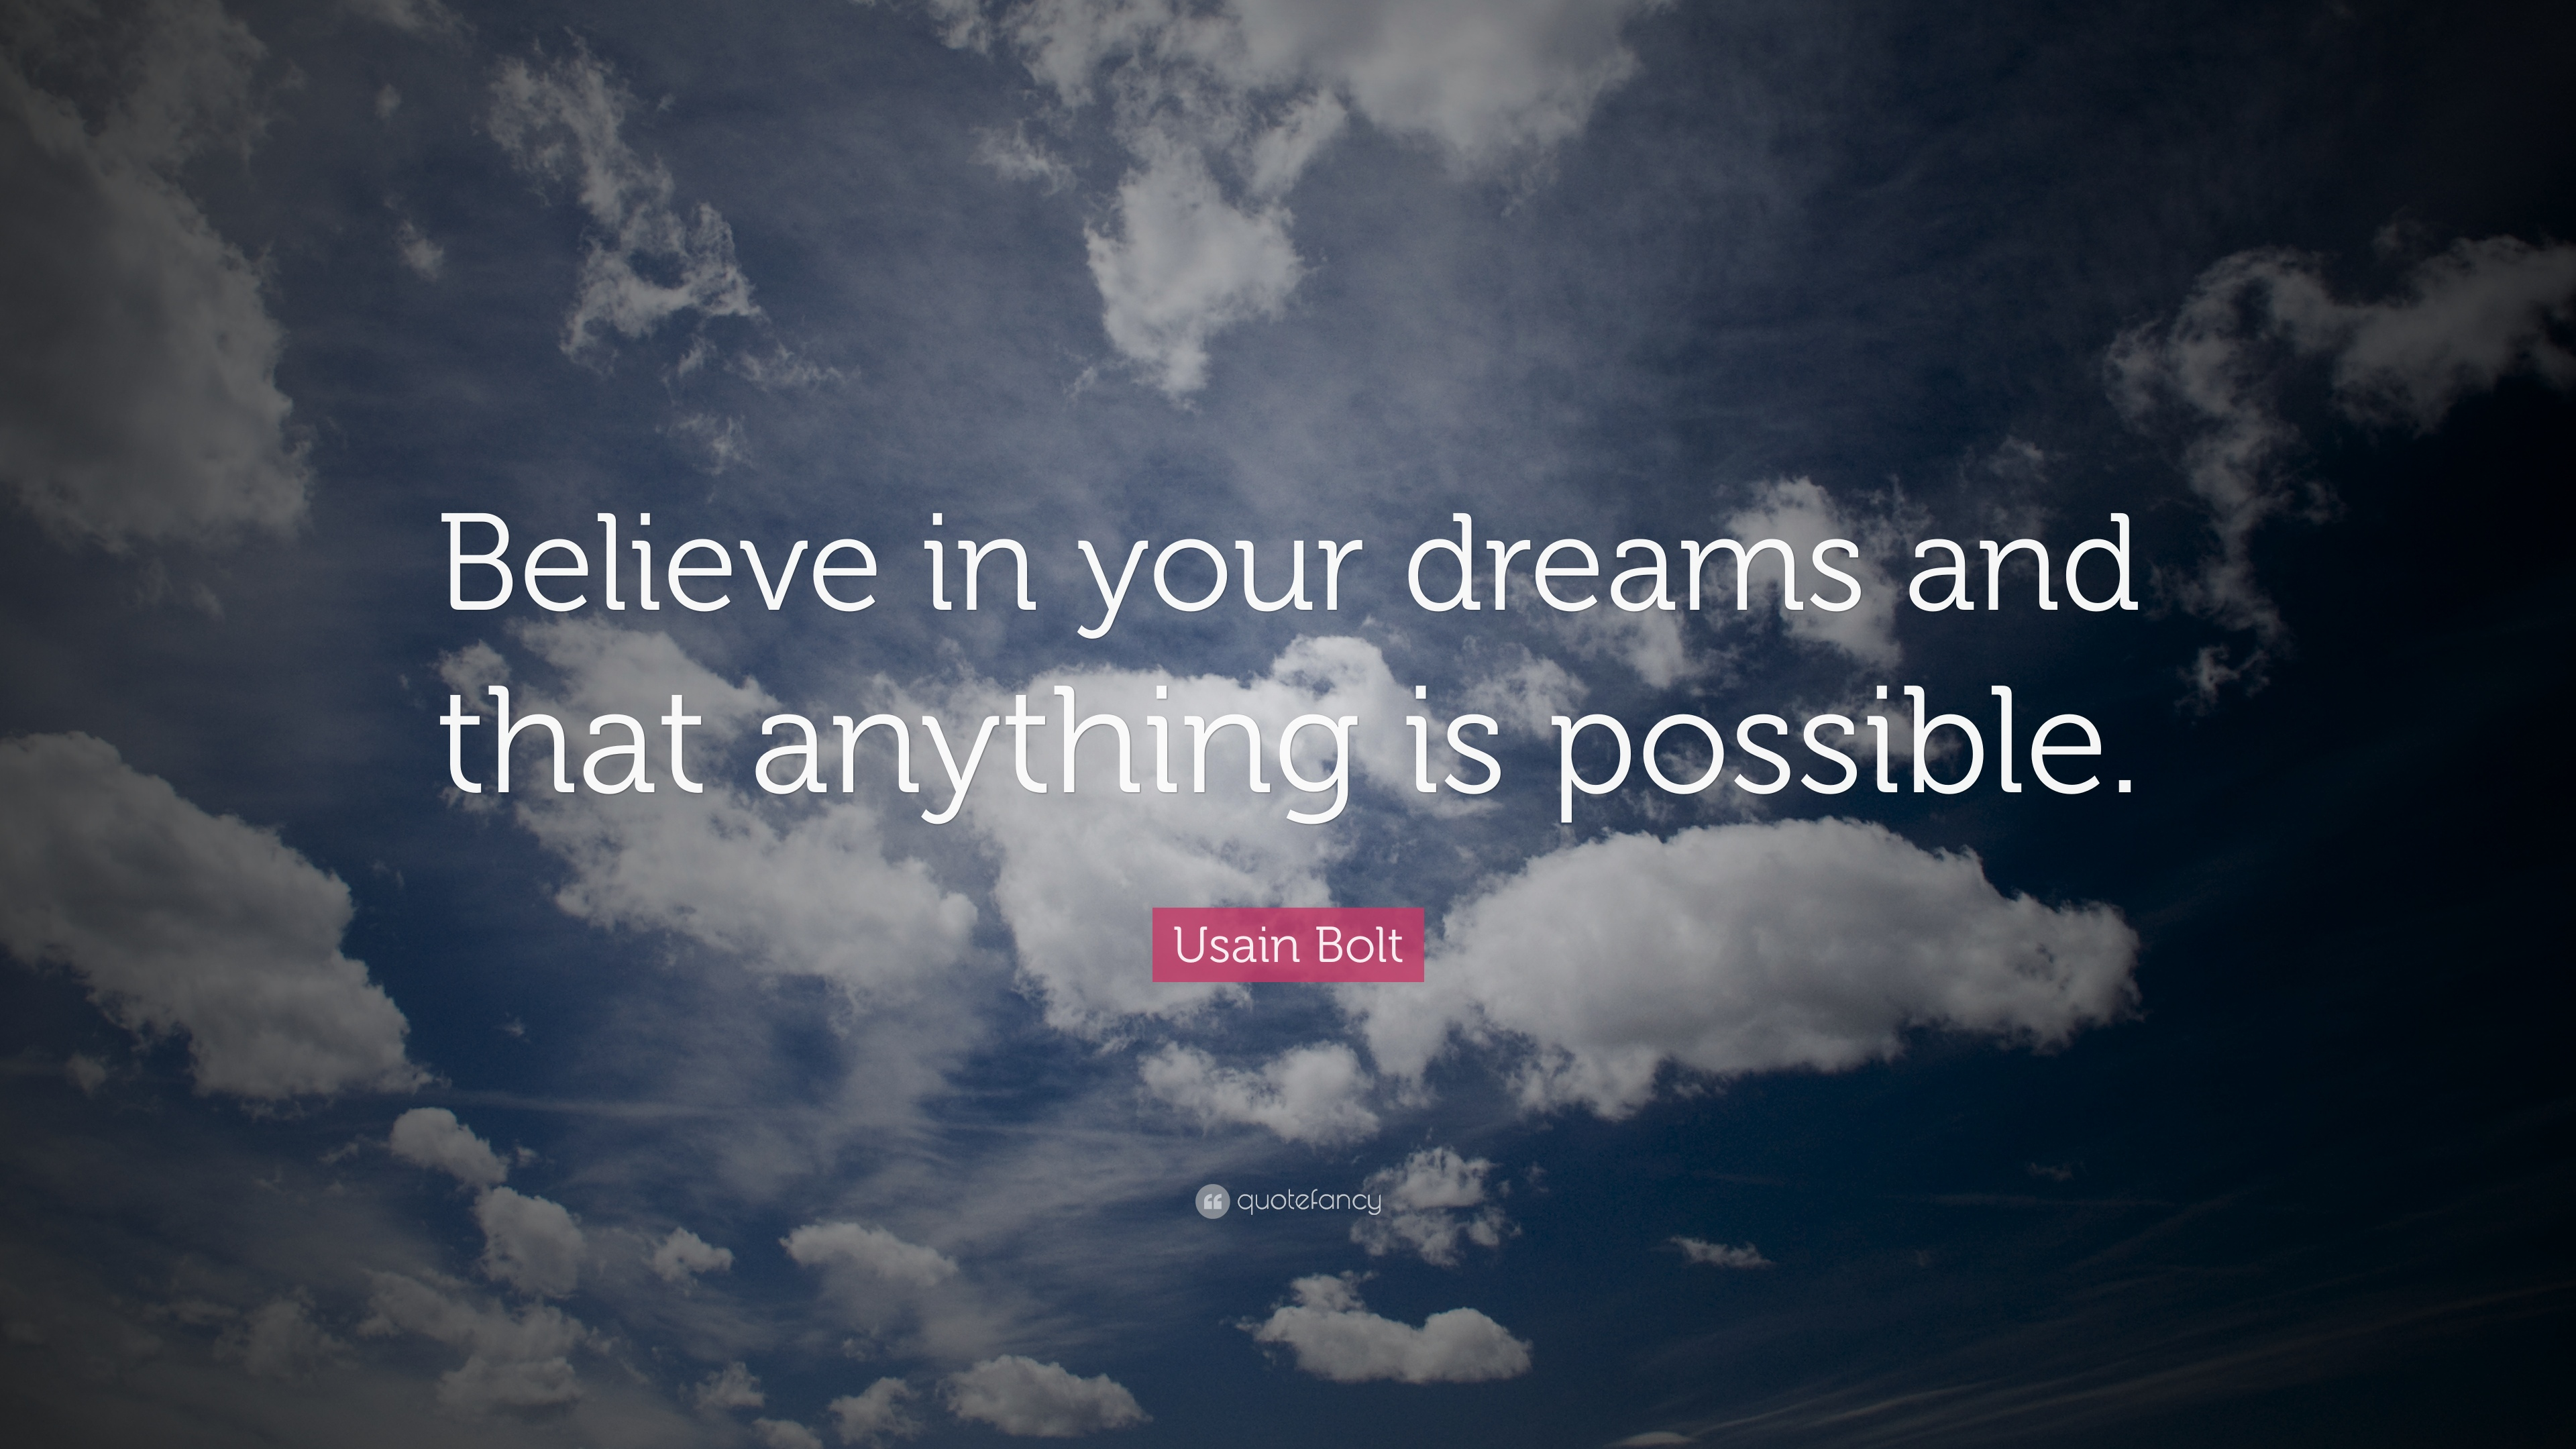 Usain Bolt Quote Believe In Your Dreams And That Anything Is Possible